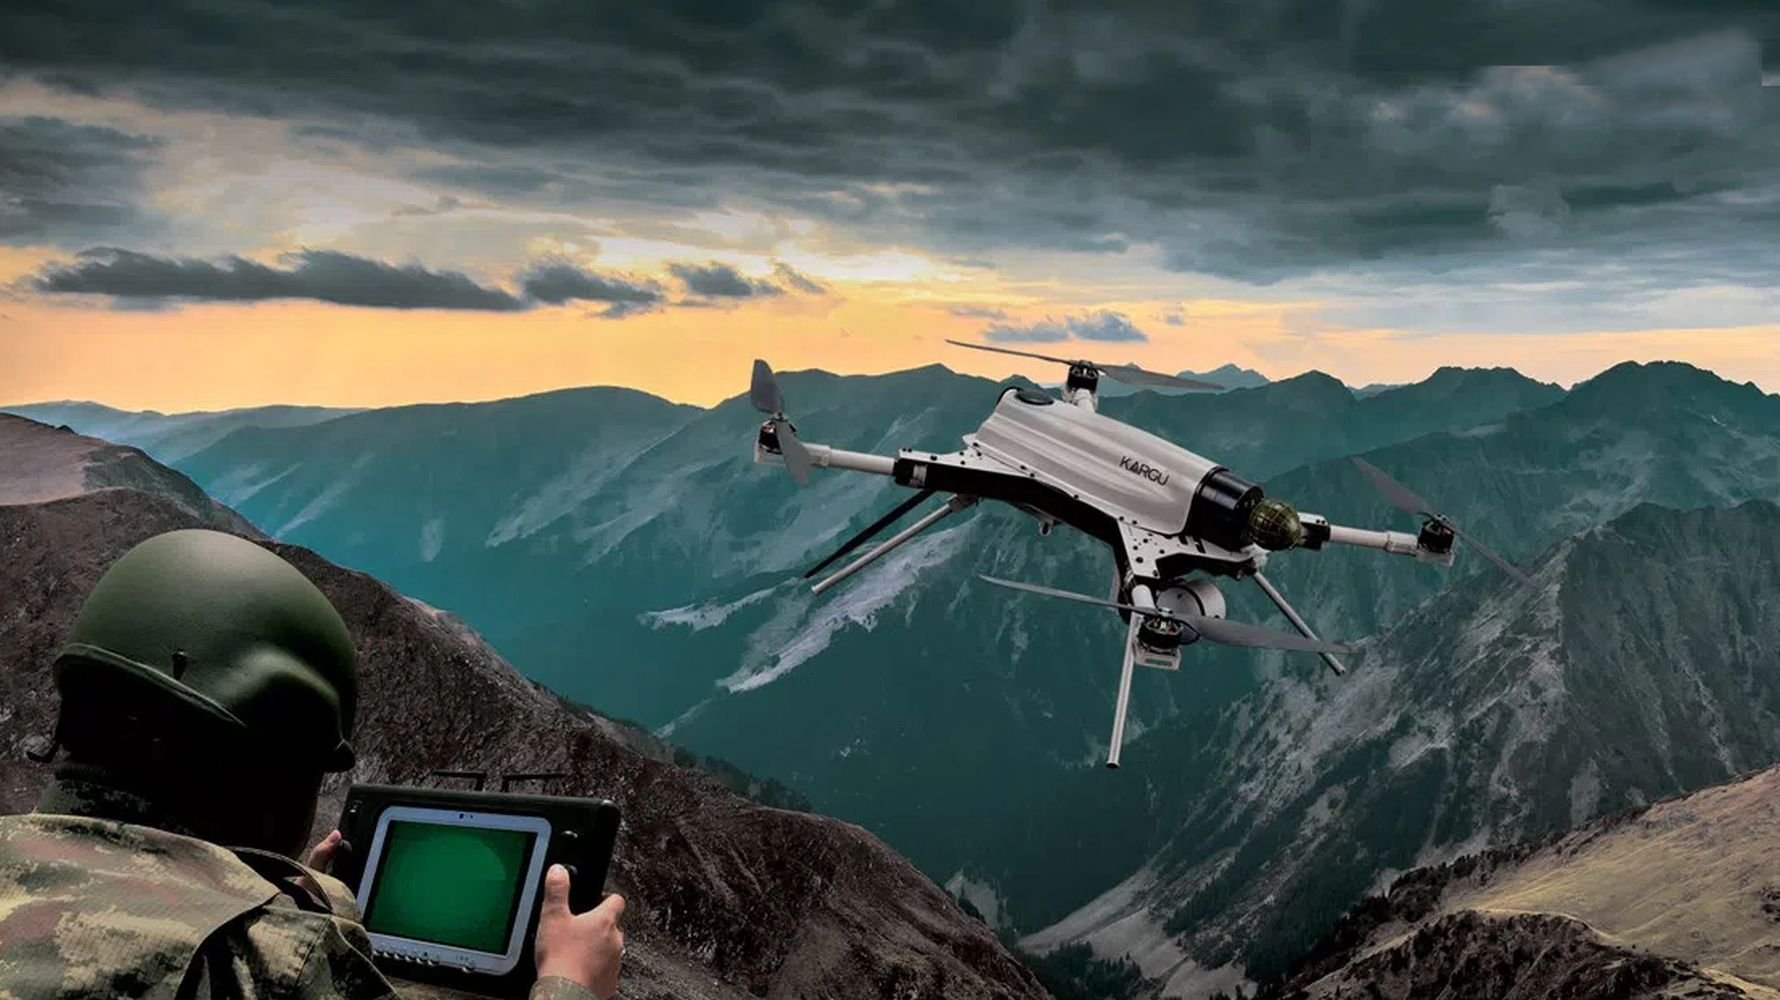 Turkish made drone kargu uav detects and destroys the enemy with smart algorithm